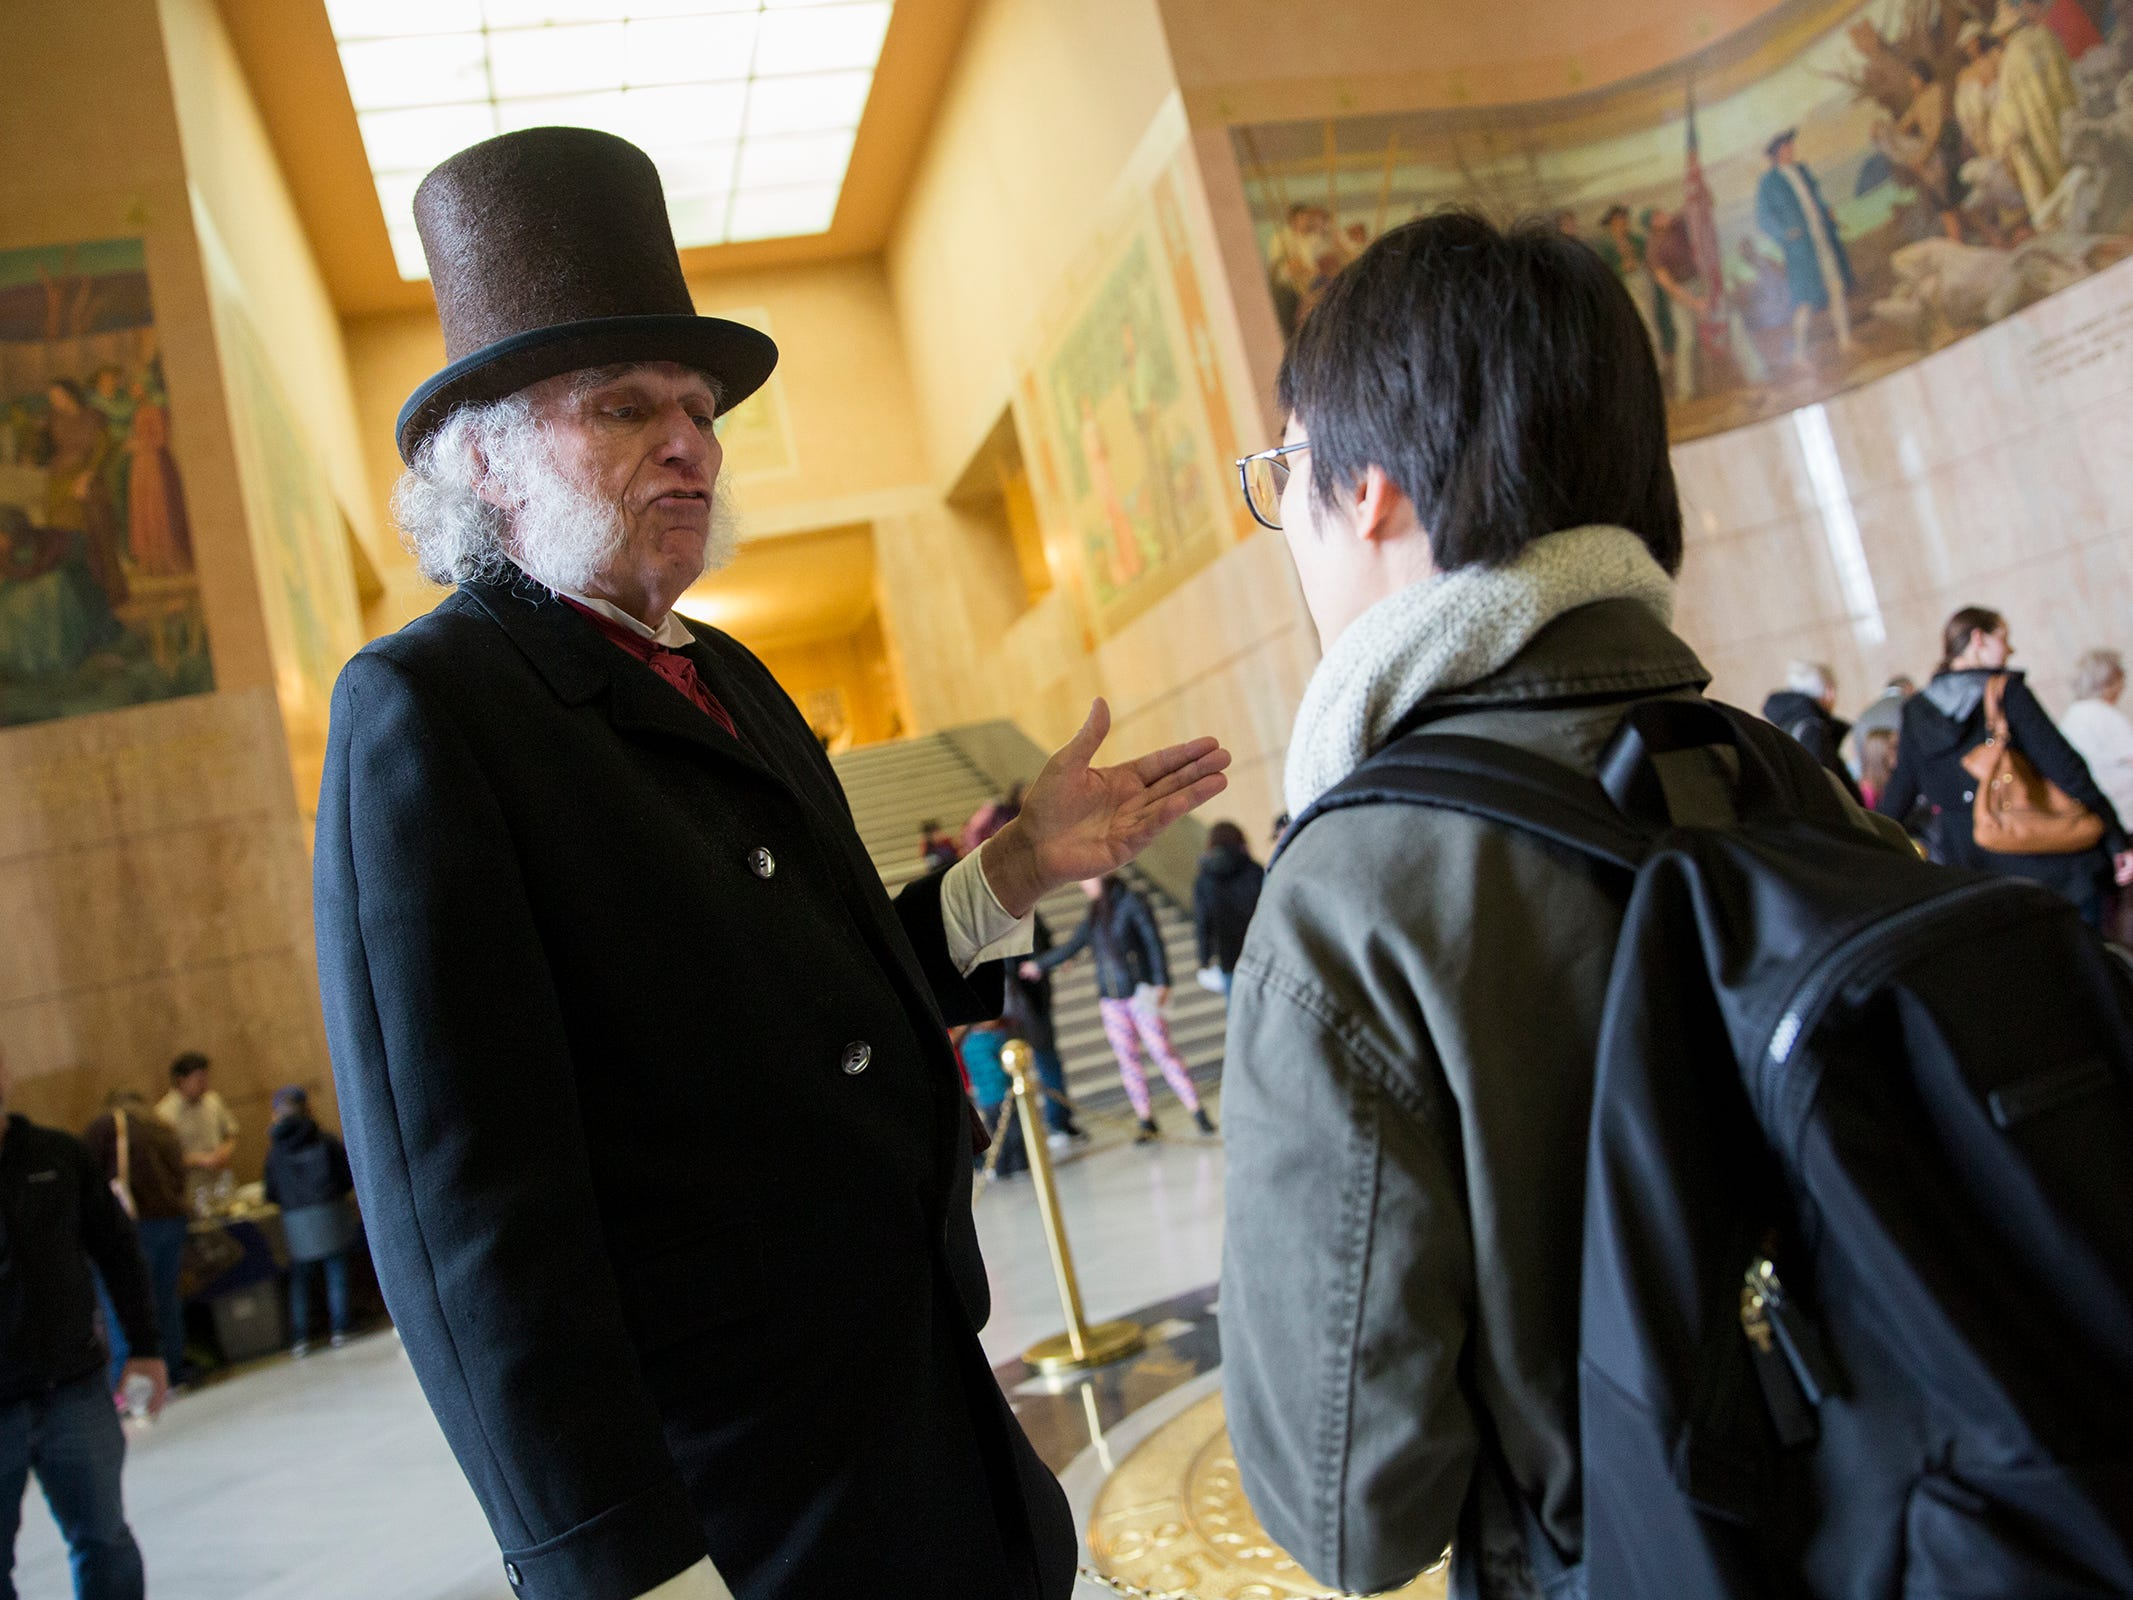 """Doug Neeley plays the role of Doctor John McLoughlin, known as the """"Father of Oregon"""" at Oregon's 160th Birthday Celebration at the Oregon State Capitol in Salem on Saturday, Feb. 16, 2019."""